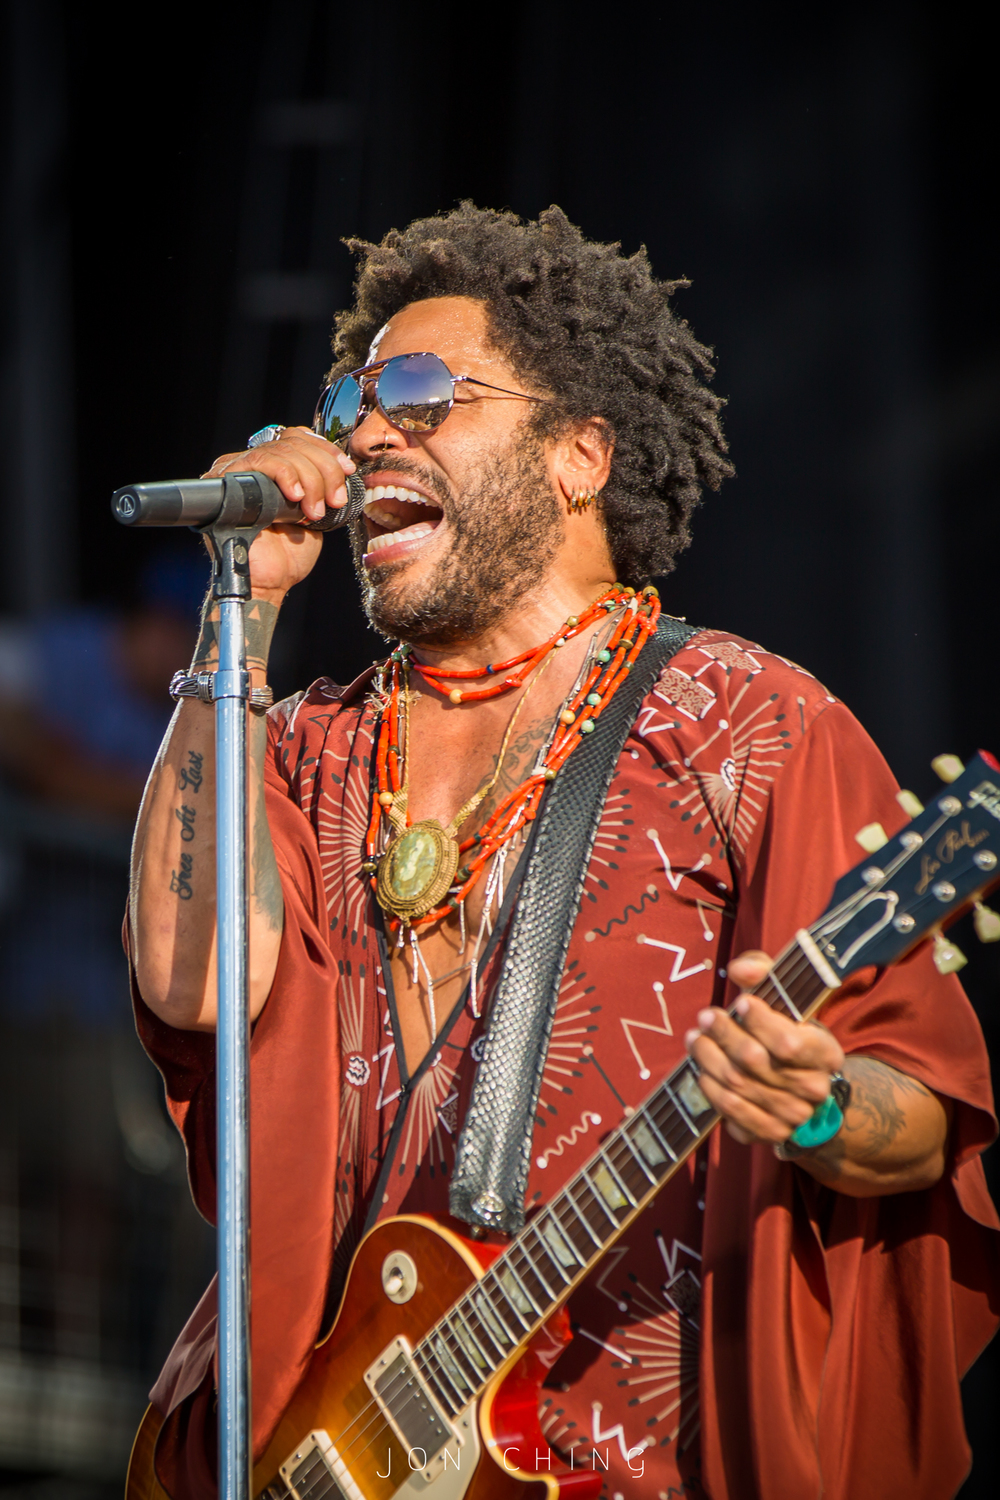 Lenny Kravitz, BottleRock Napa Valley, 2016